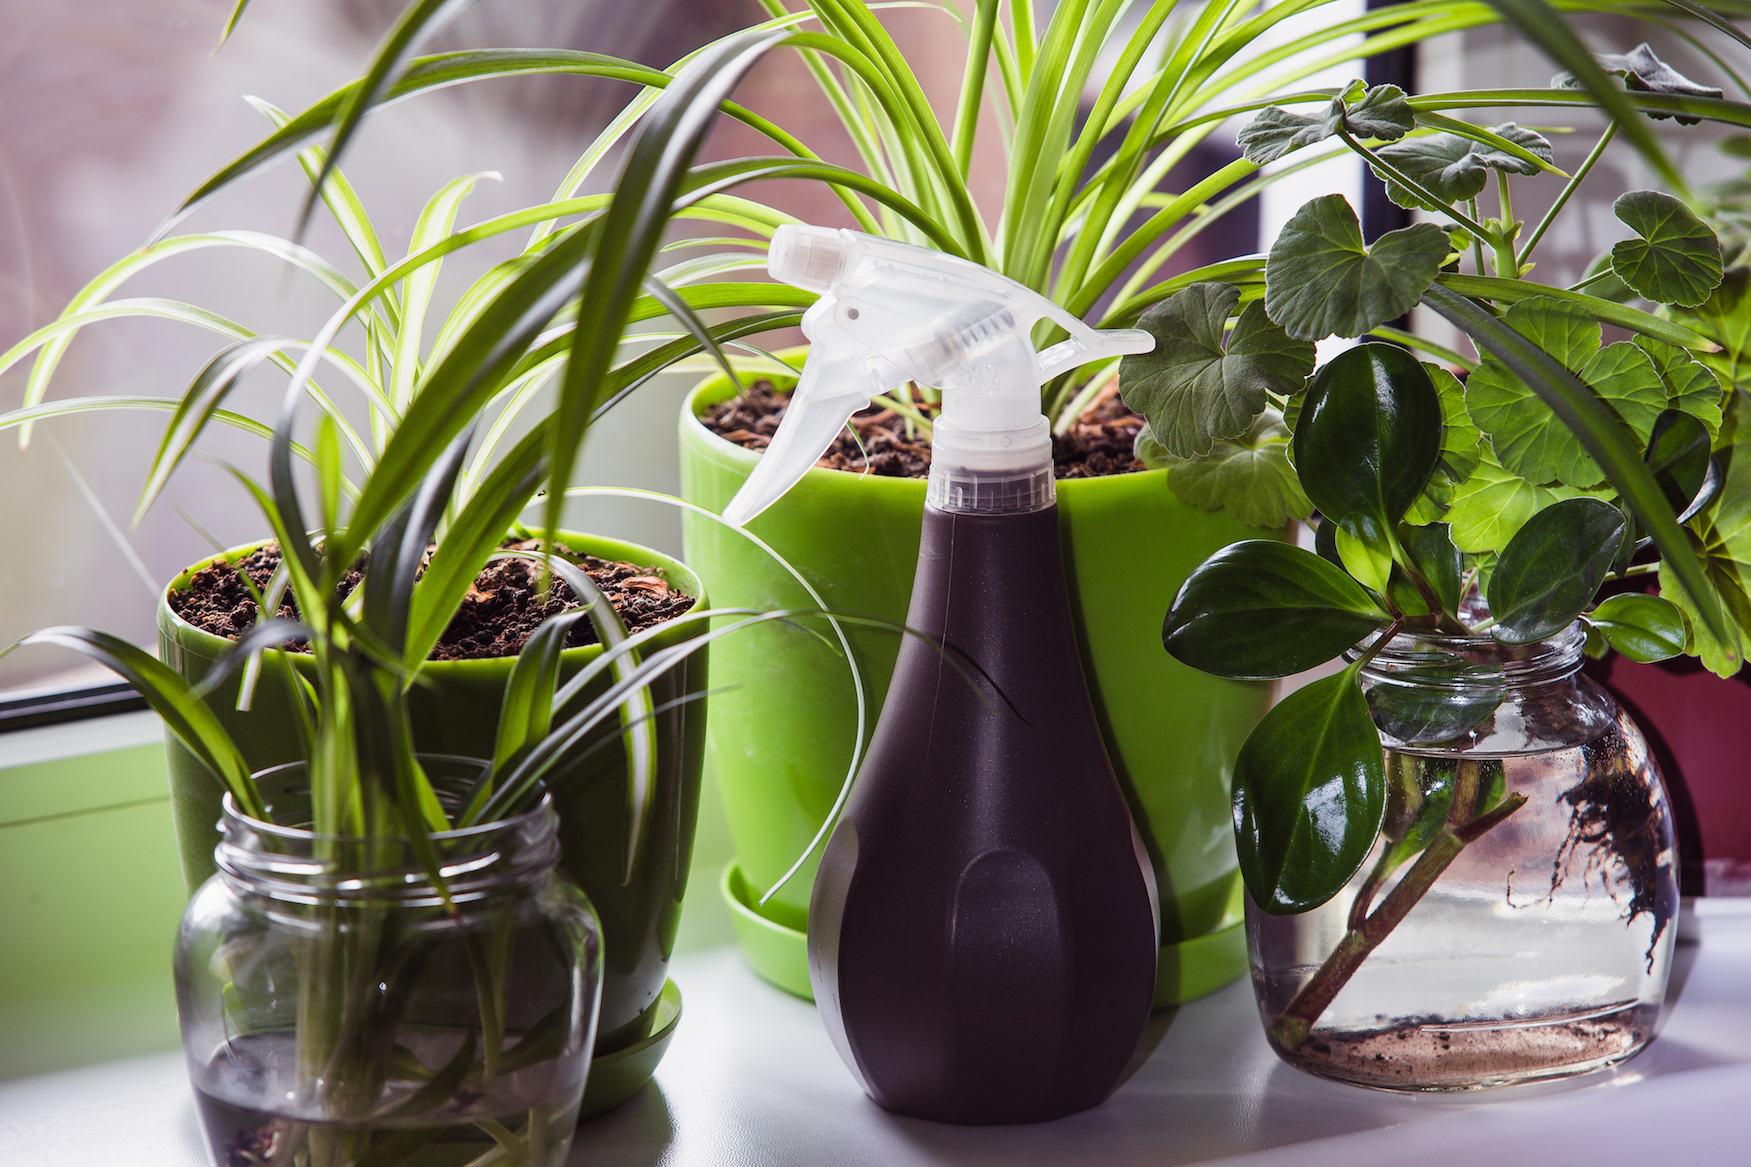 Today's Video of the Day comes from the American Chemical Society and features a look at how everyday houseplants can help you cut down on indoor air pollution.